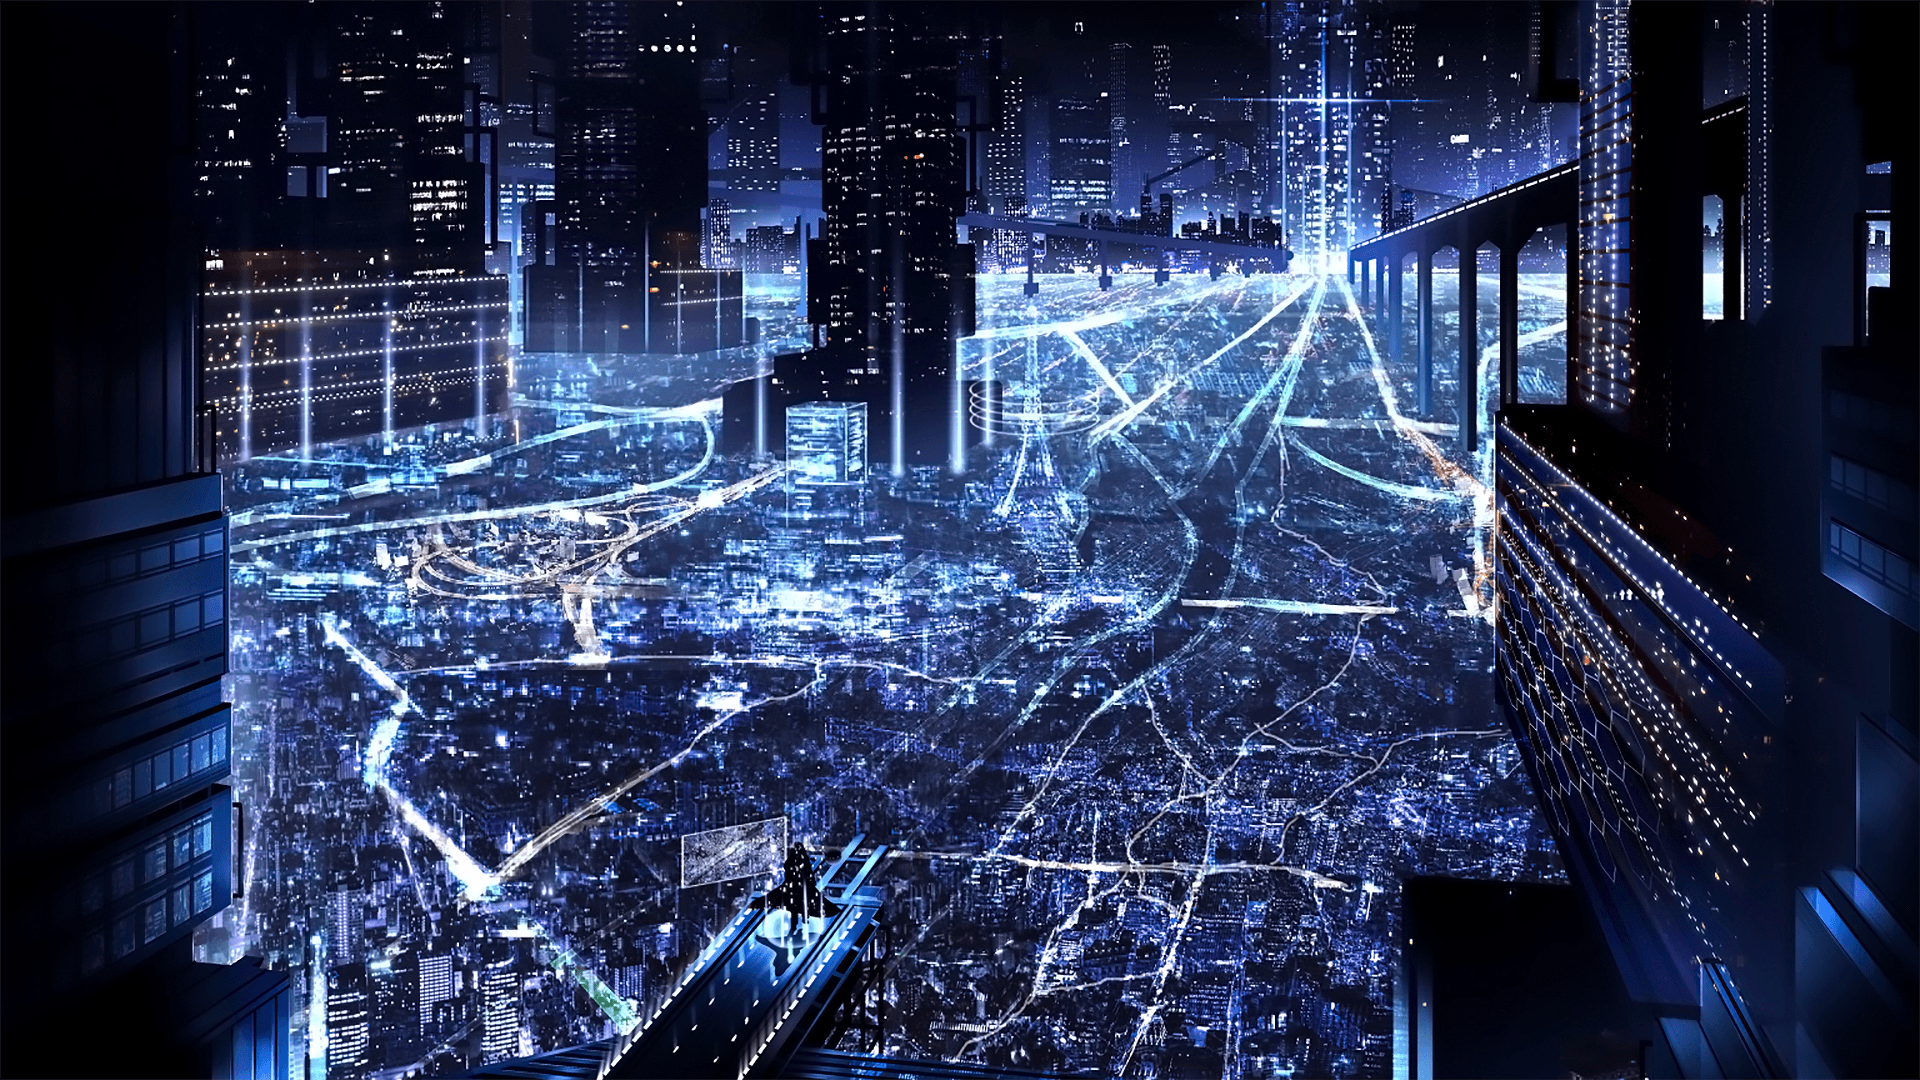 Cityscape Night Anime Wallpapers - Wallpaper Cave